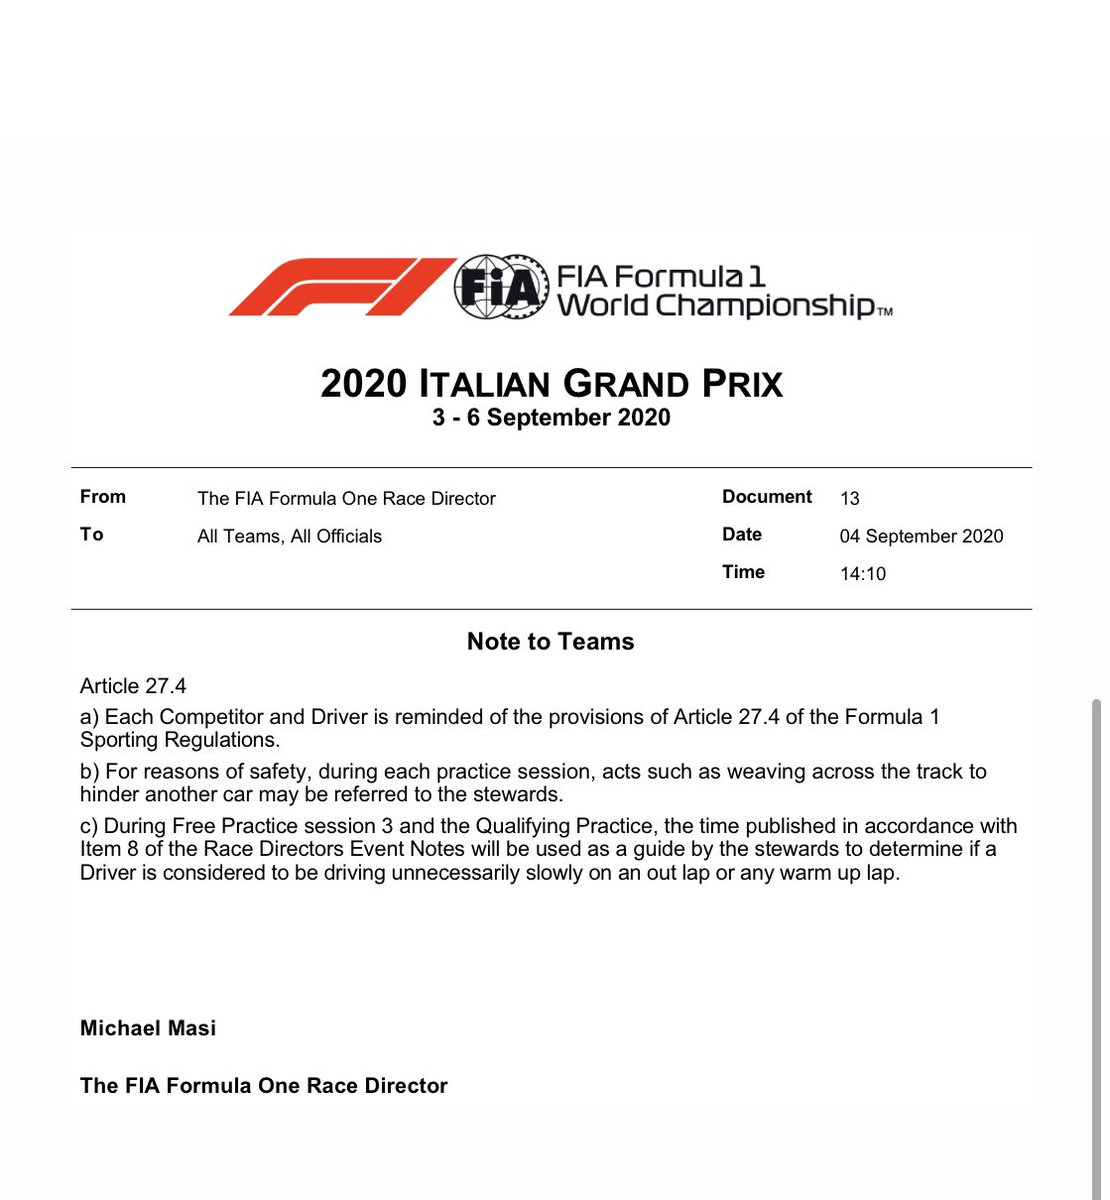 Interesting email from @fia It seems that a solution has been found to deter drivers from going unnecessarily slowly on outlaps. And a sensible solution too https://t.co/FmC2z0XuiX